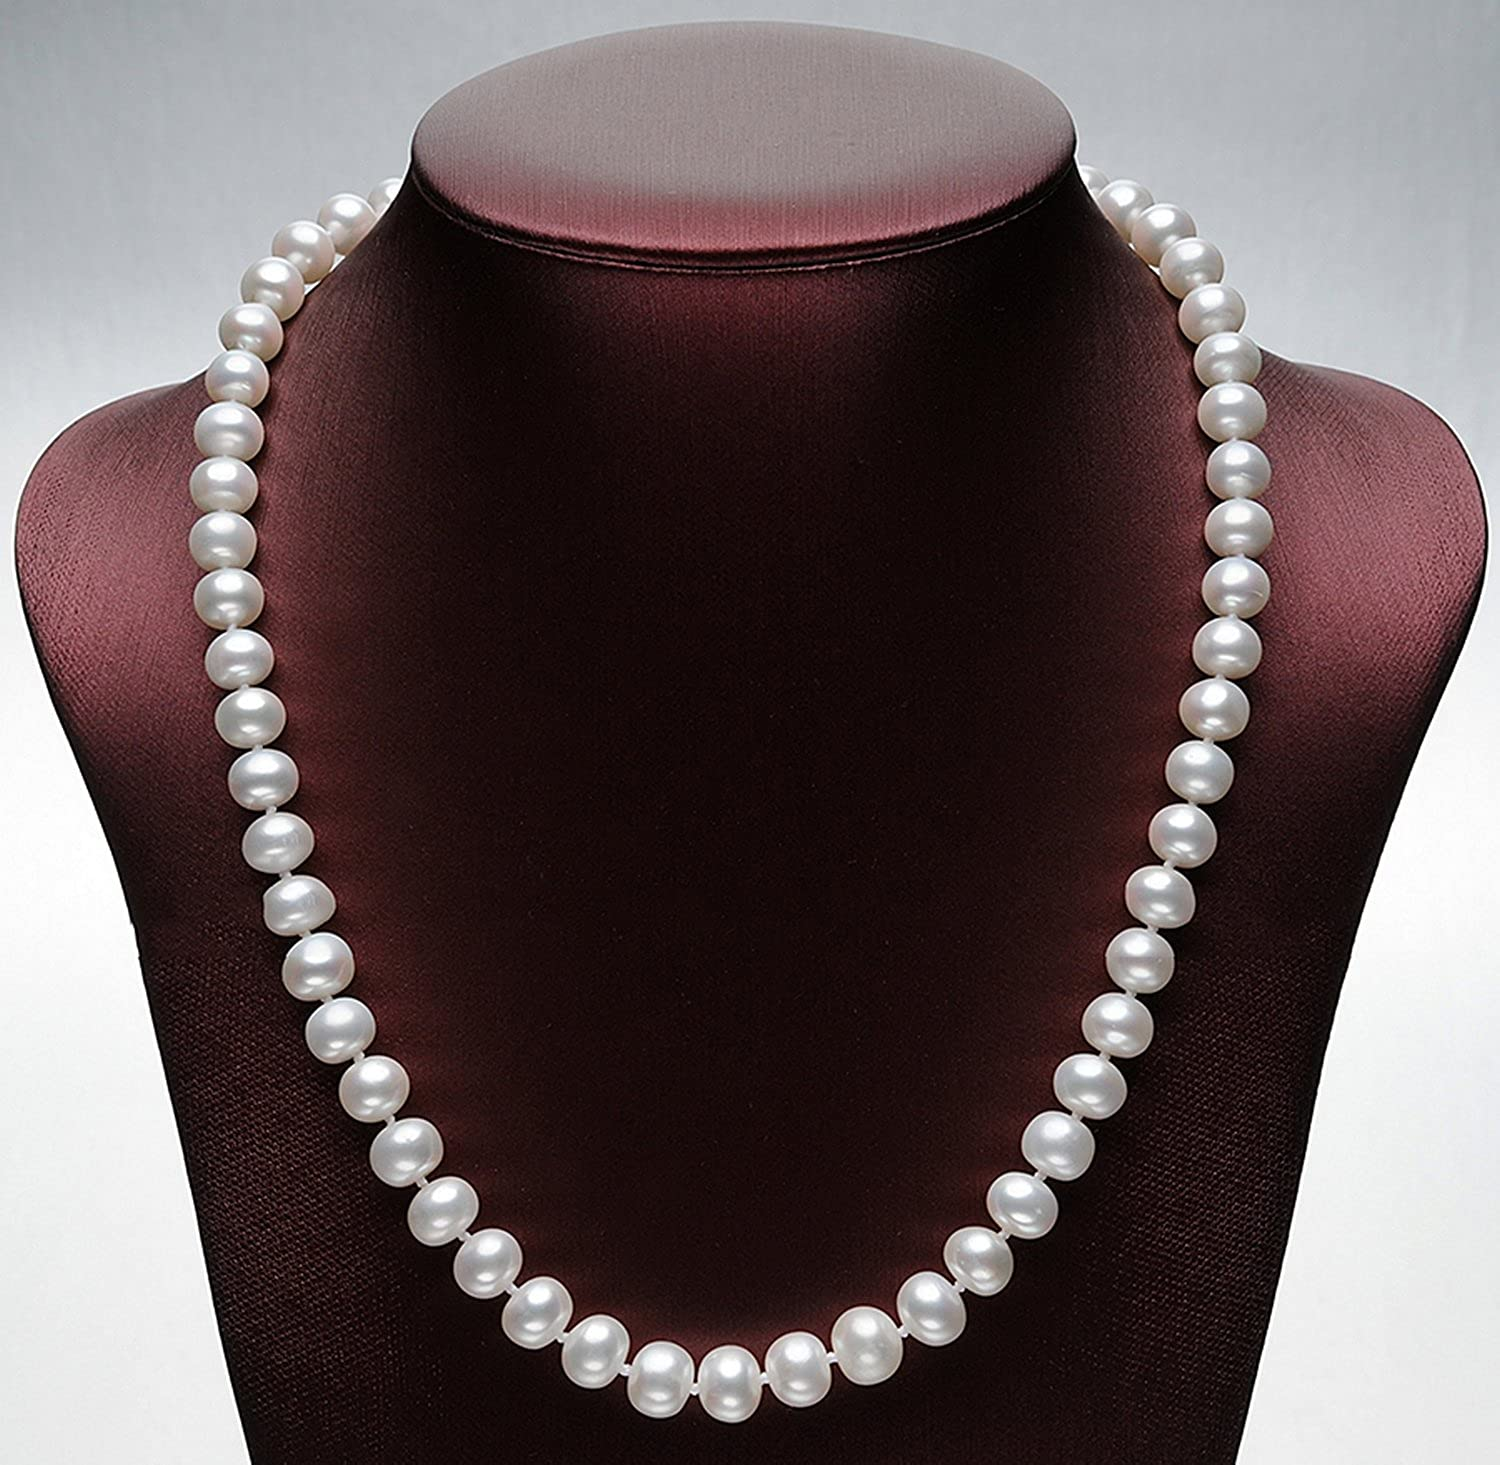 CS-DB Jewelry Silver Genuine Pearl Classic White Pearls Chain Charm Pendants Necklaces